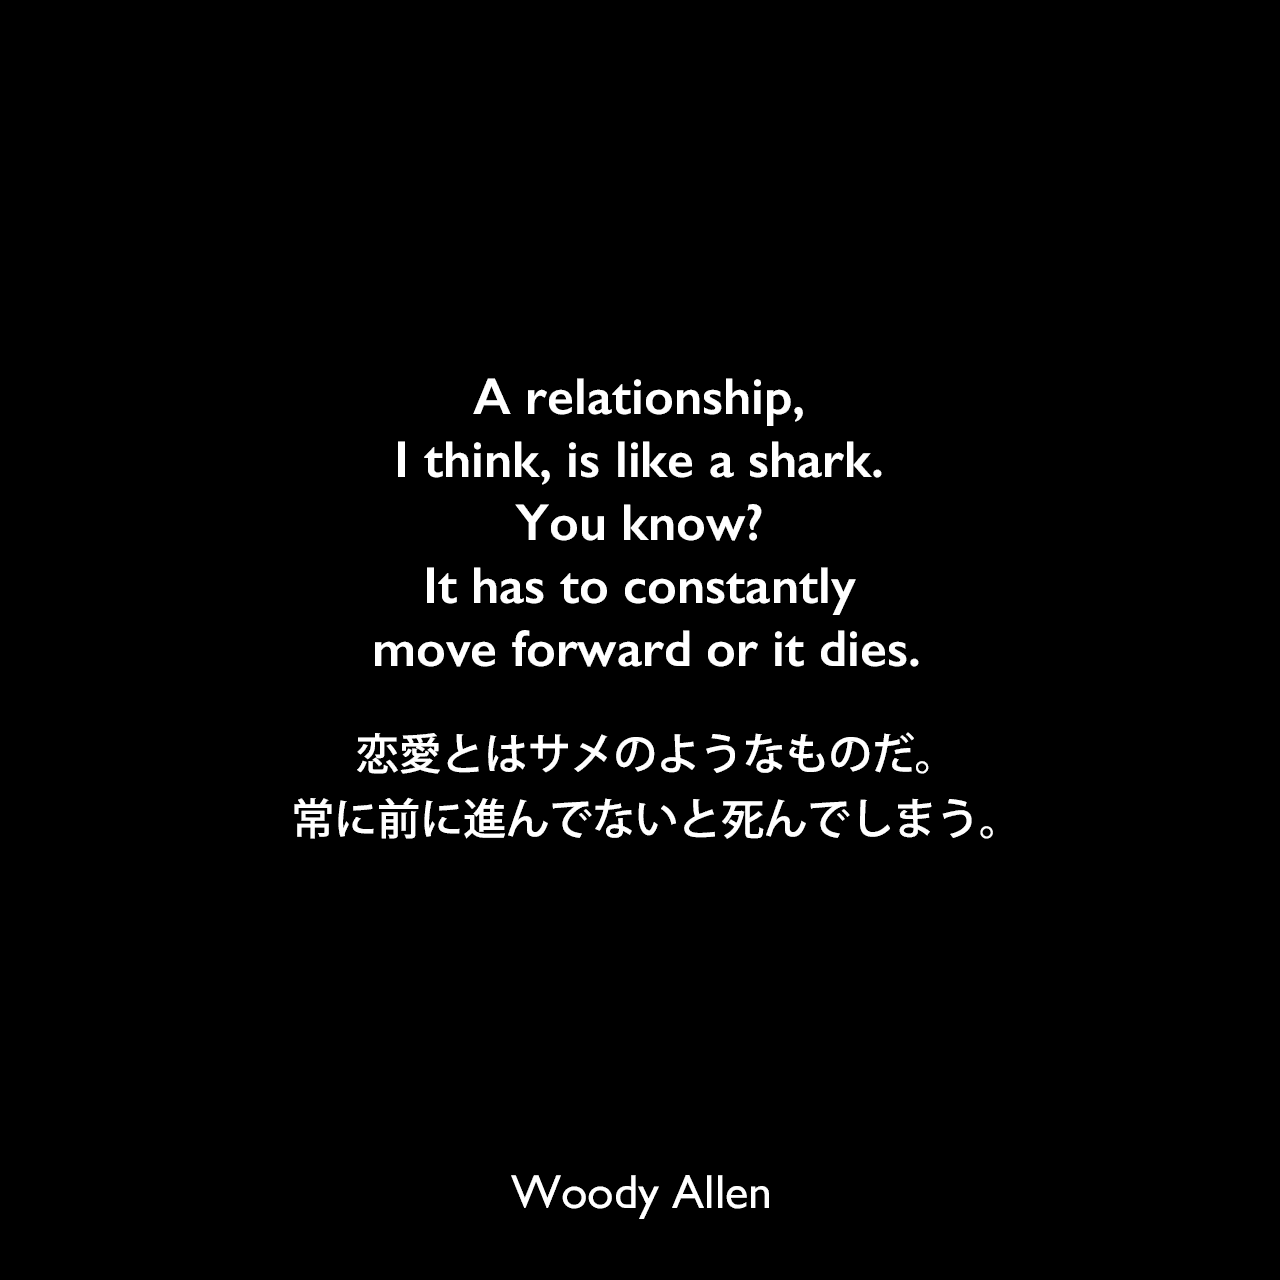 A relationship, I think, is like a shark. You know? It has to constantly move forward or it dies.恋愛とはサメのようなものだ。常に前に進んでないと死んでしまう。Woody Allen